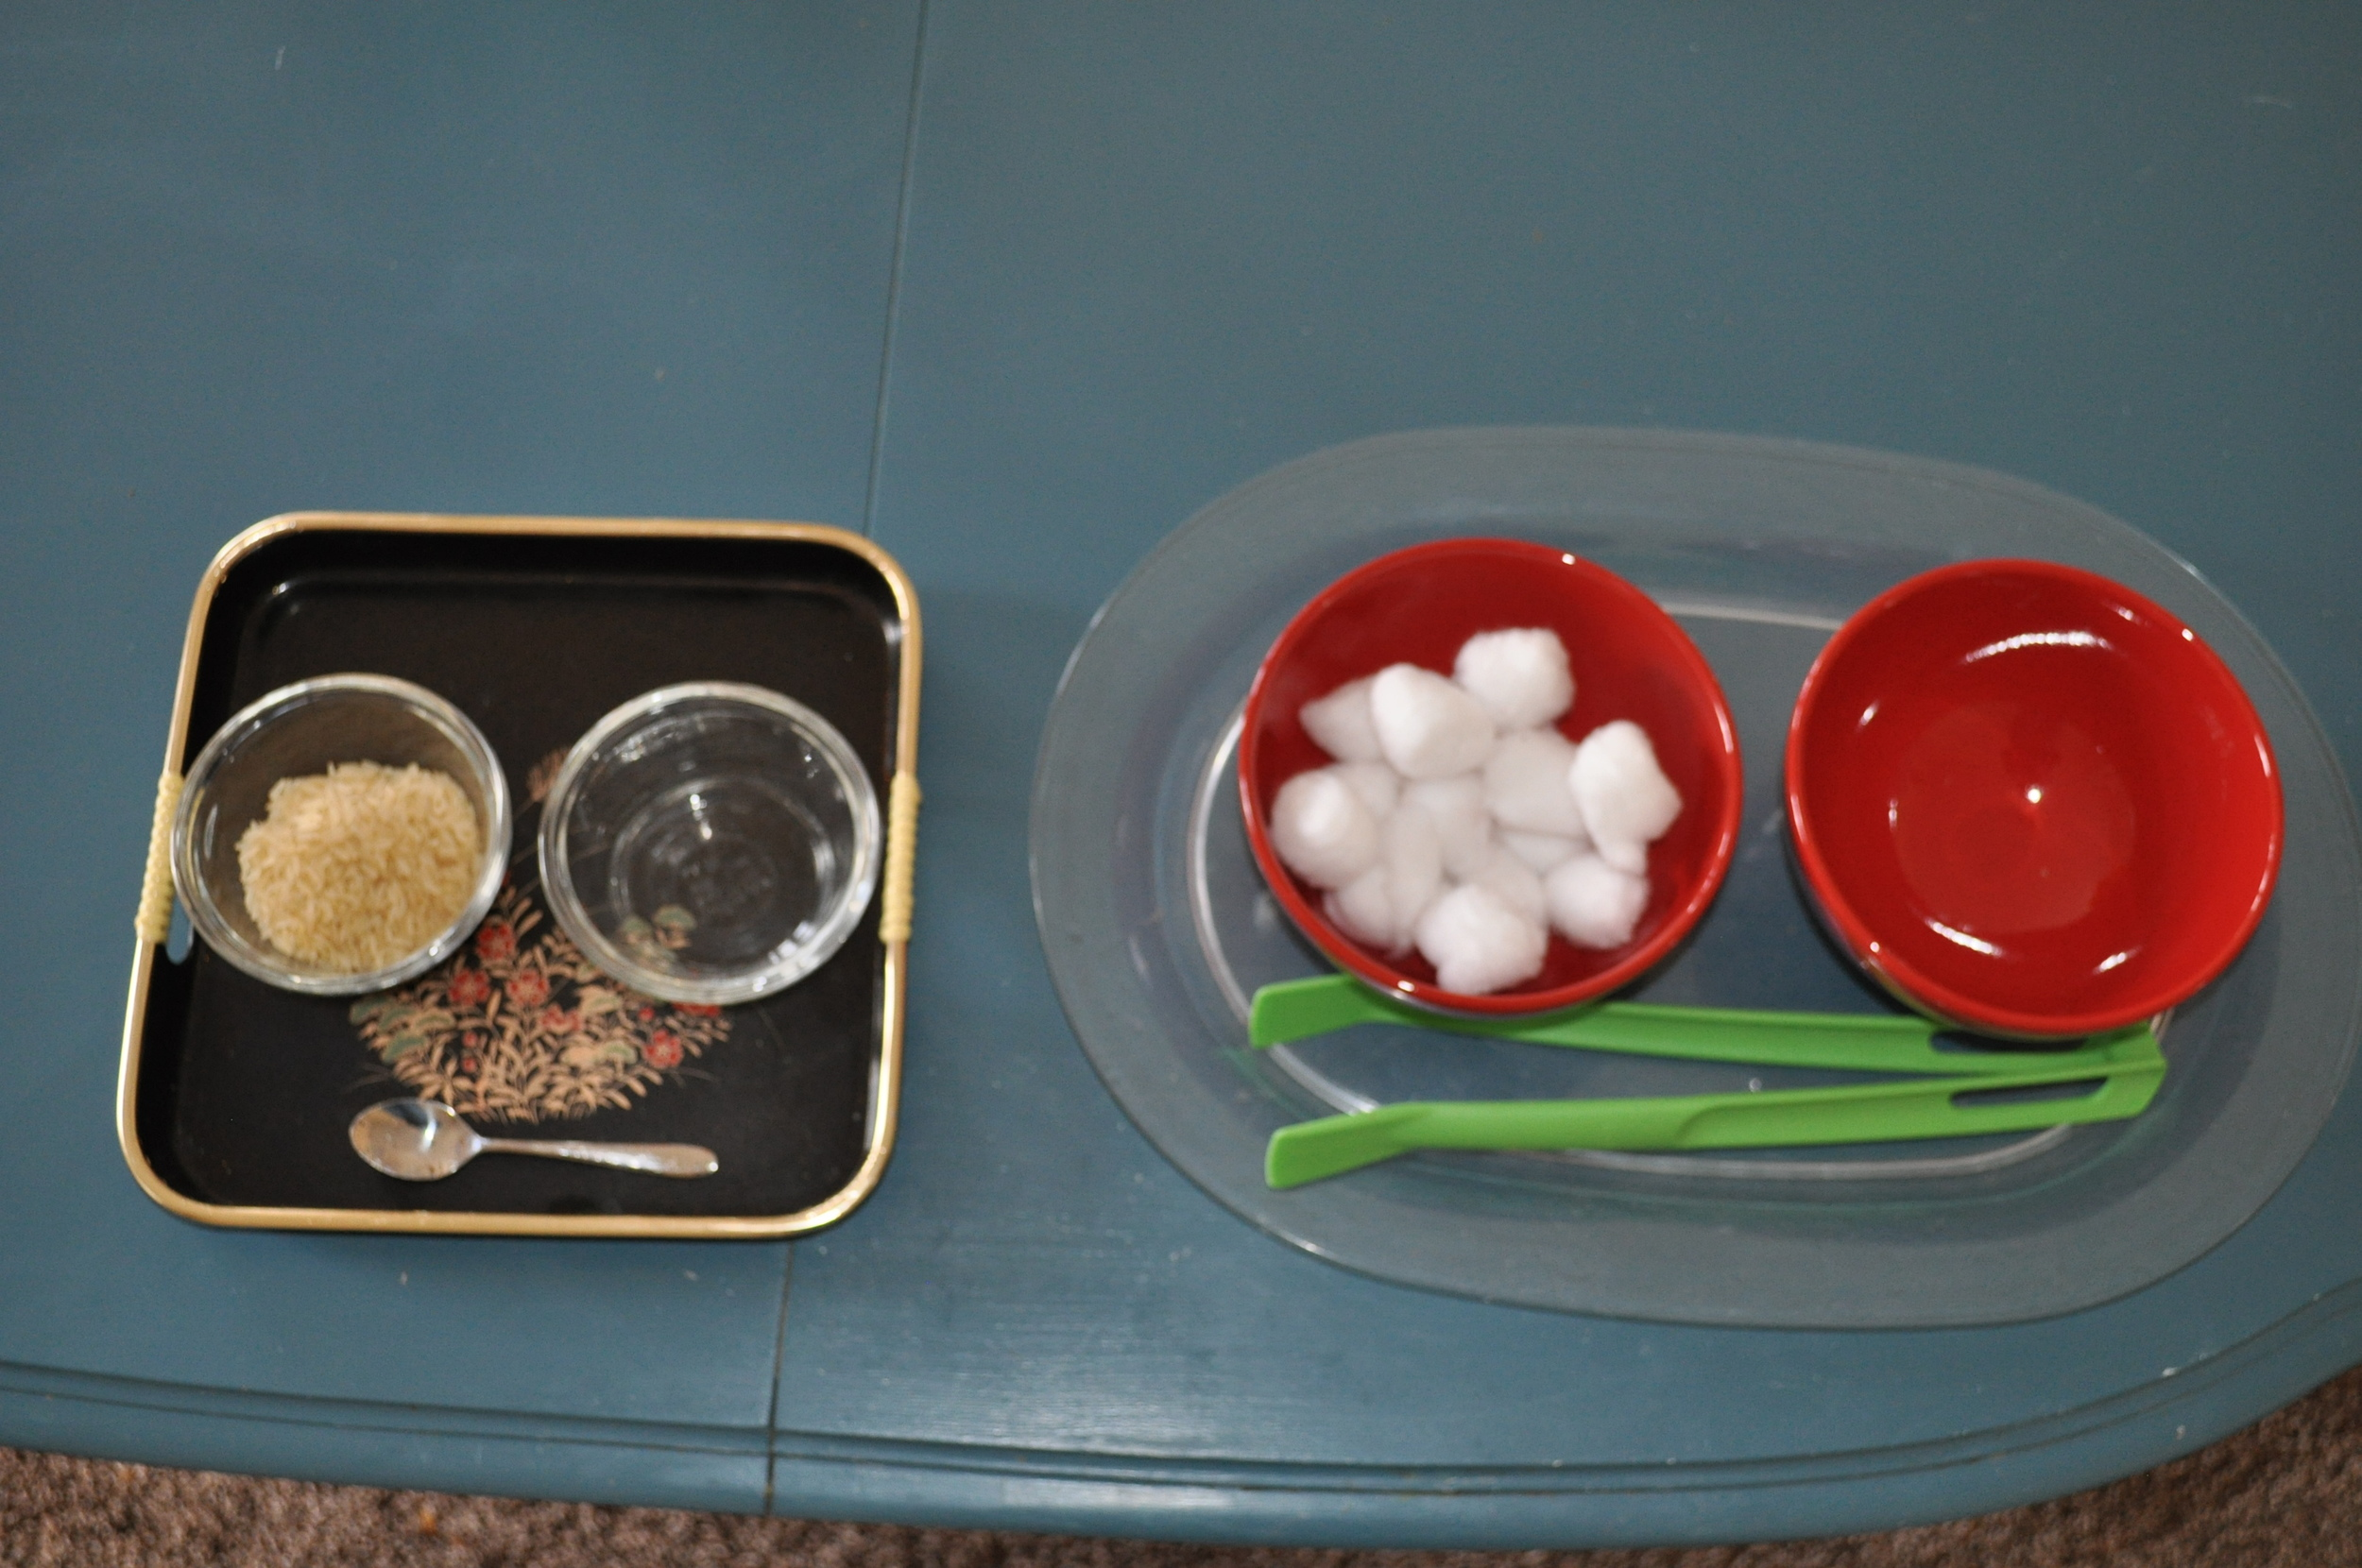 Two transferring activities.  The one on the left would be more difficult with rice and a small spoon than the one of the right with cotton balls and big tongs.